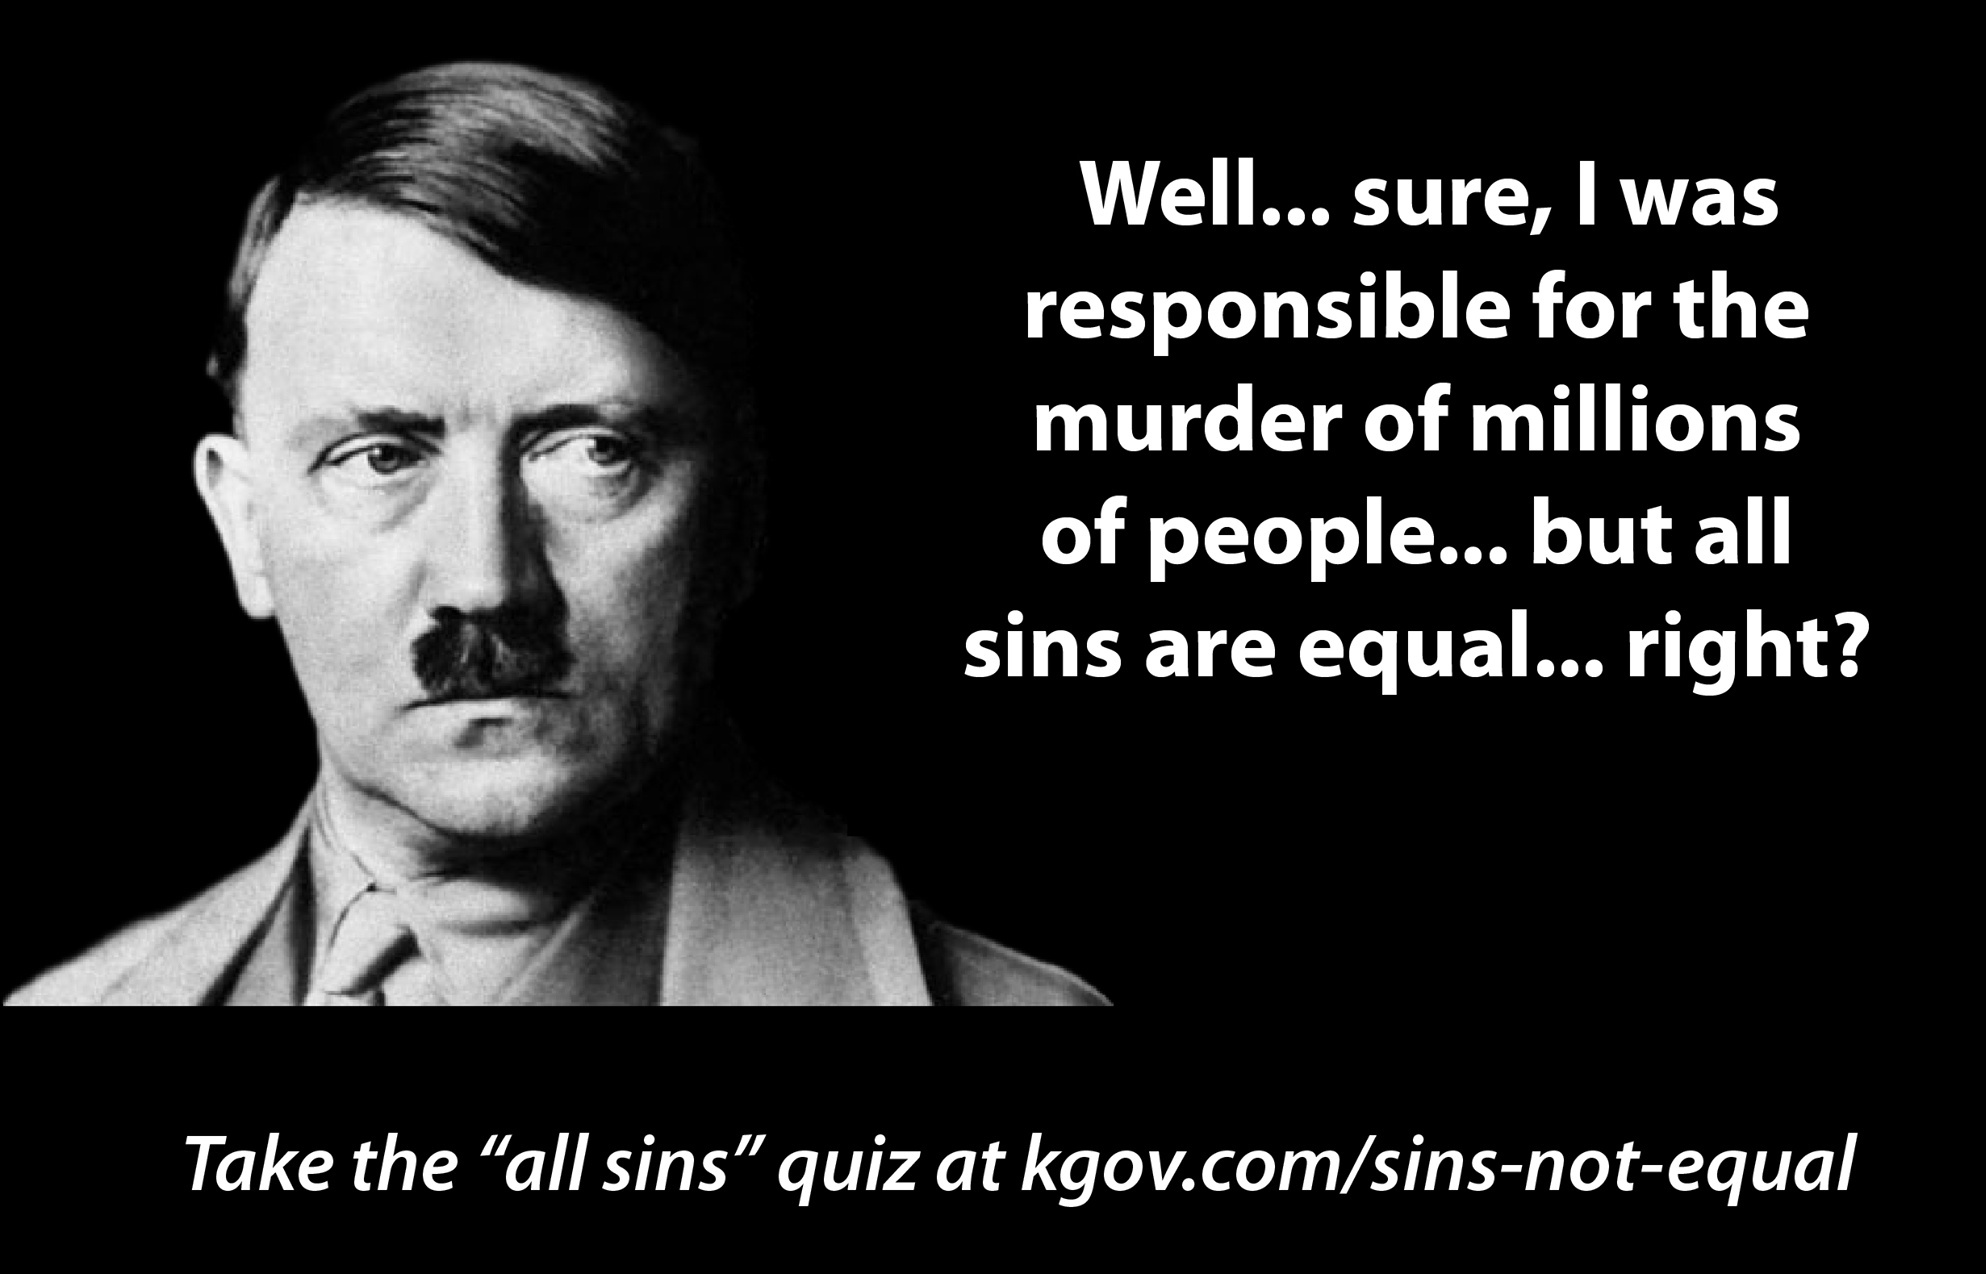 all-sins-equal-quiz.jpg